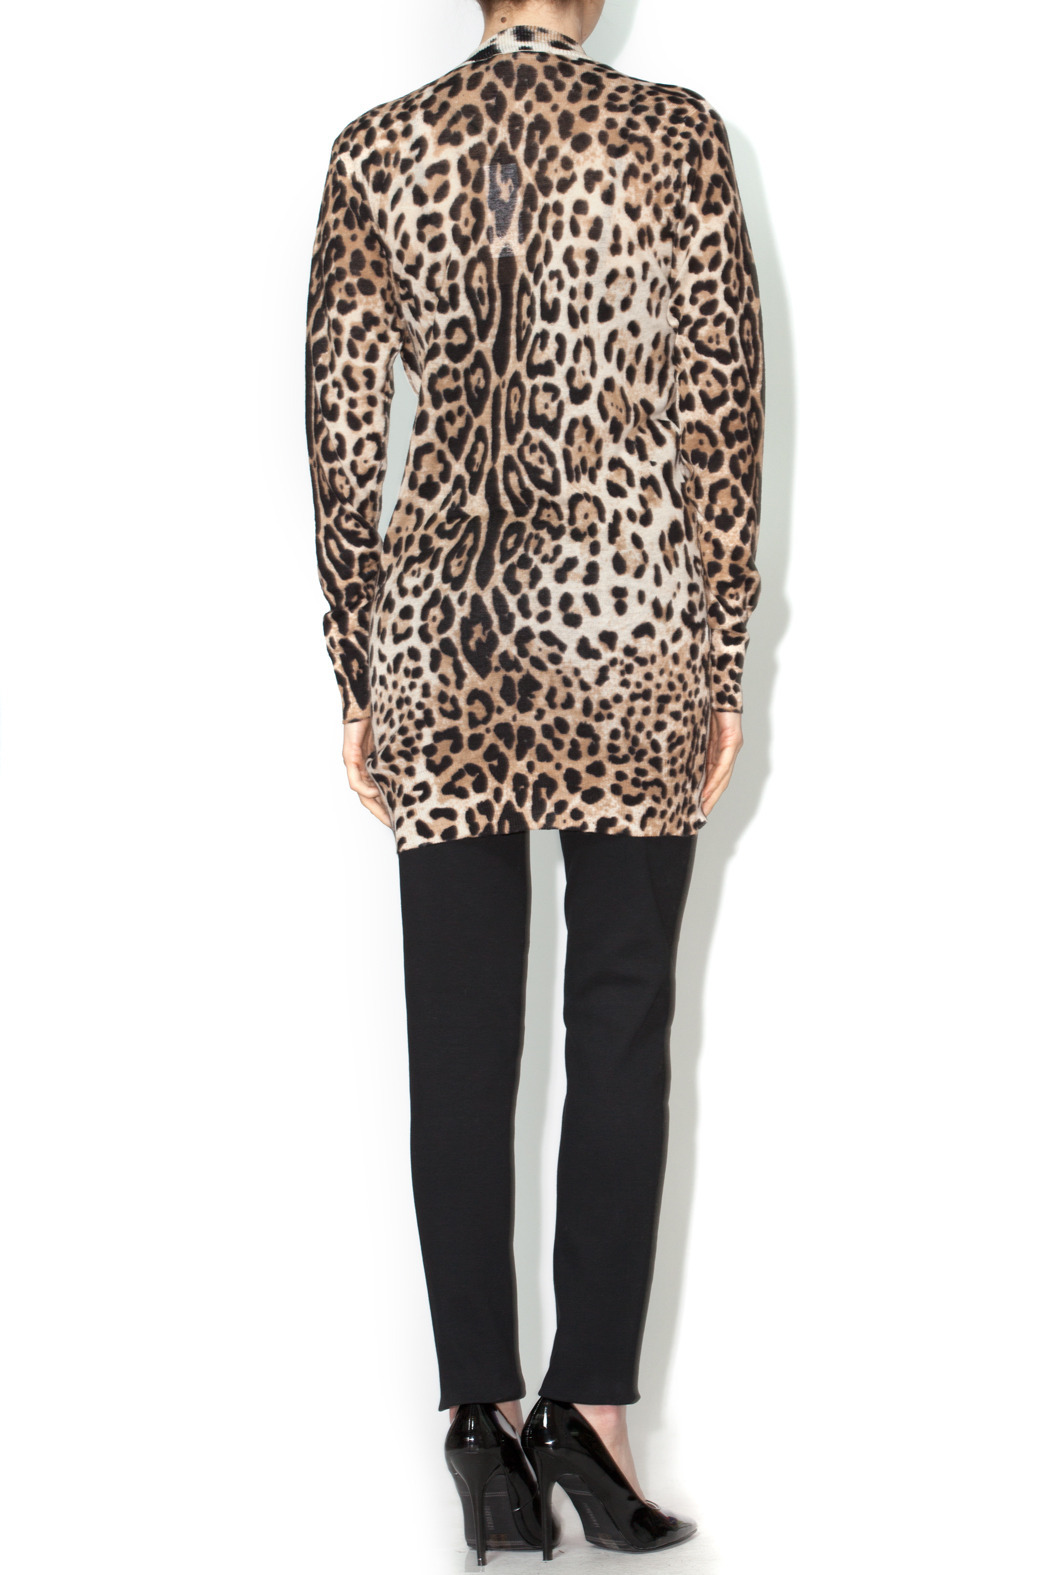 Ellison Leopard Cardigan from Oklahoma by Country Lace Boutique ...